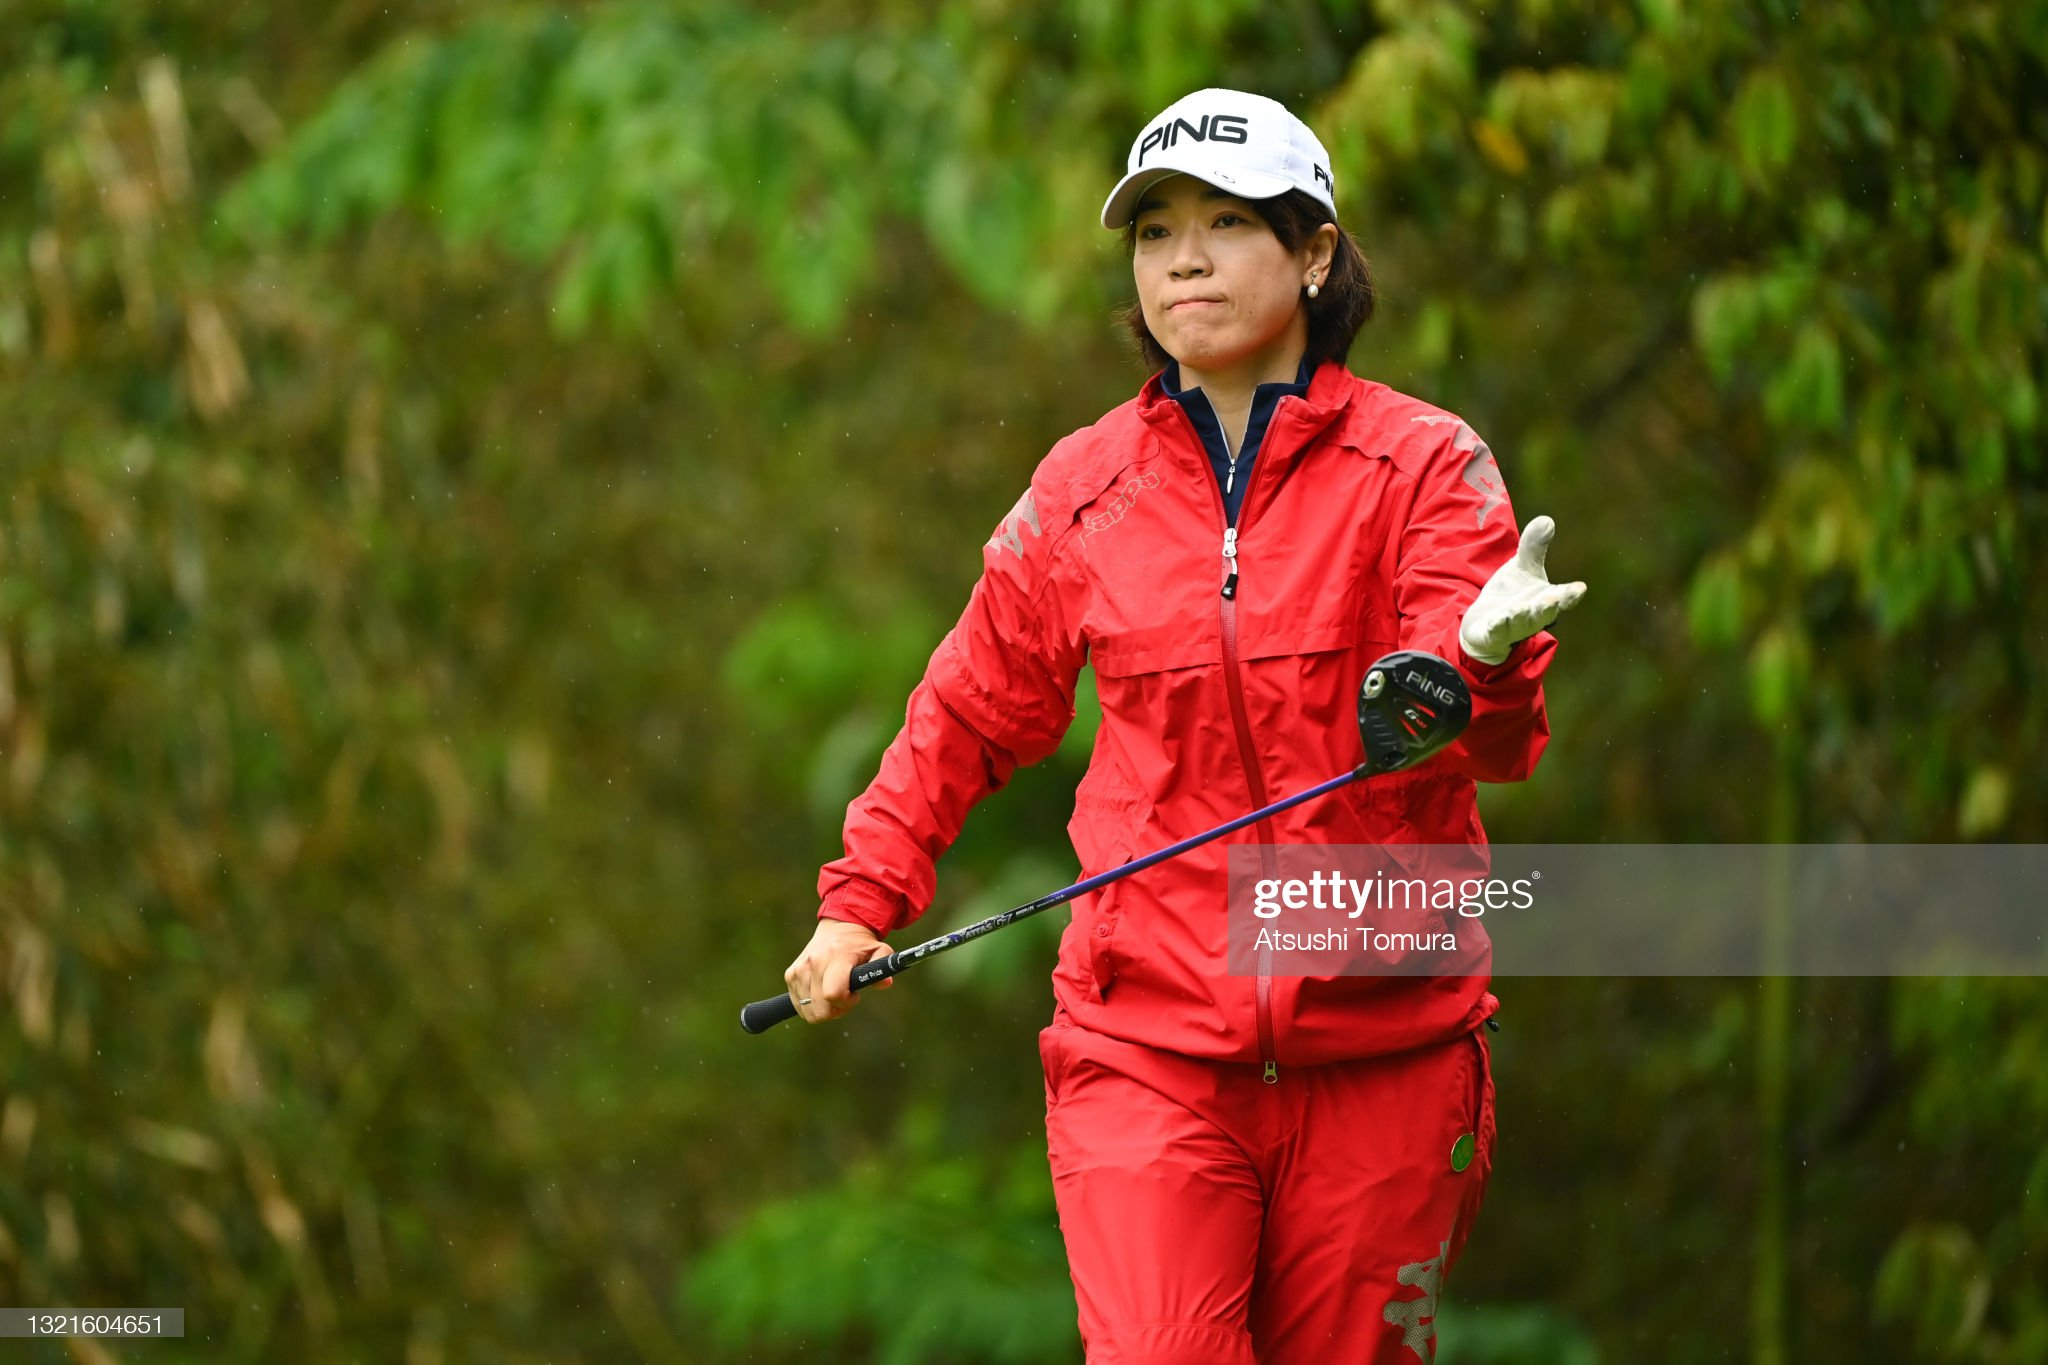 https://media.gettyimages.com/photos/shiho-oyama-of-japan-is-seen-before-her-tee-shot-on-the-4th-hole-the-picture-id1321604651?s=2048x2048